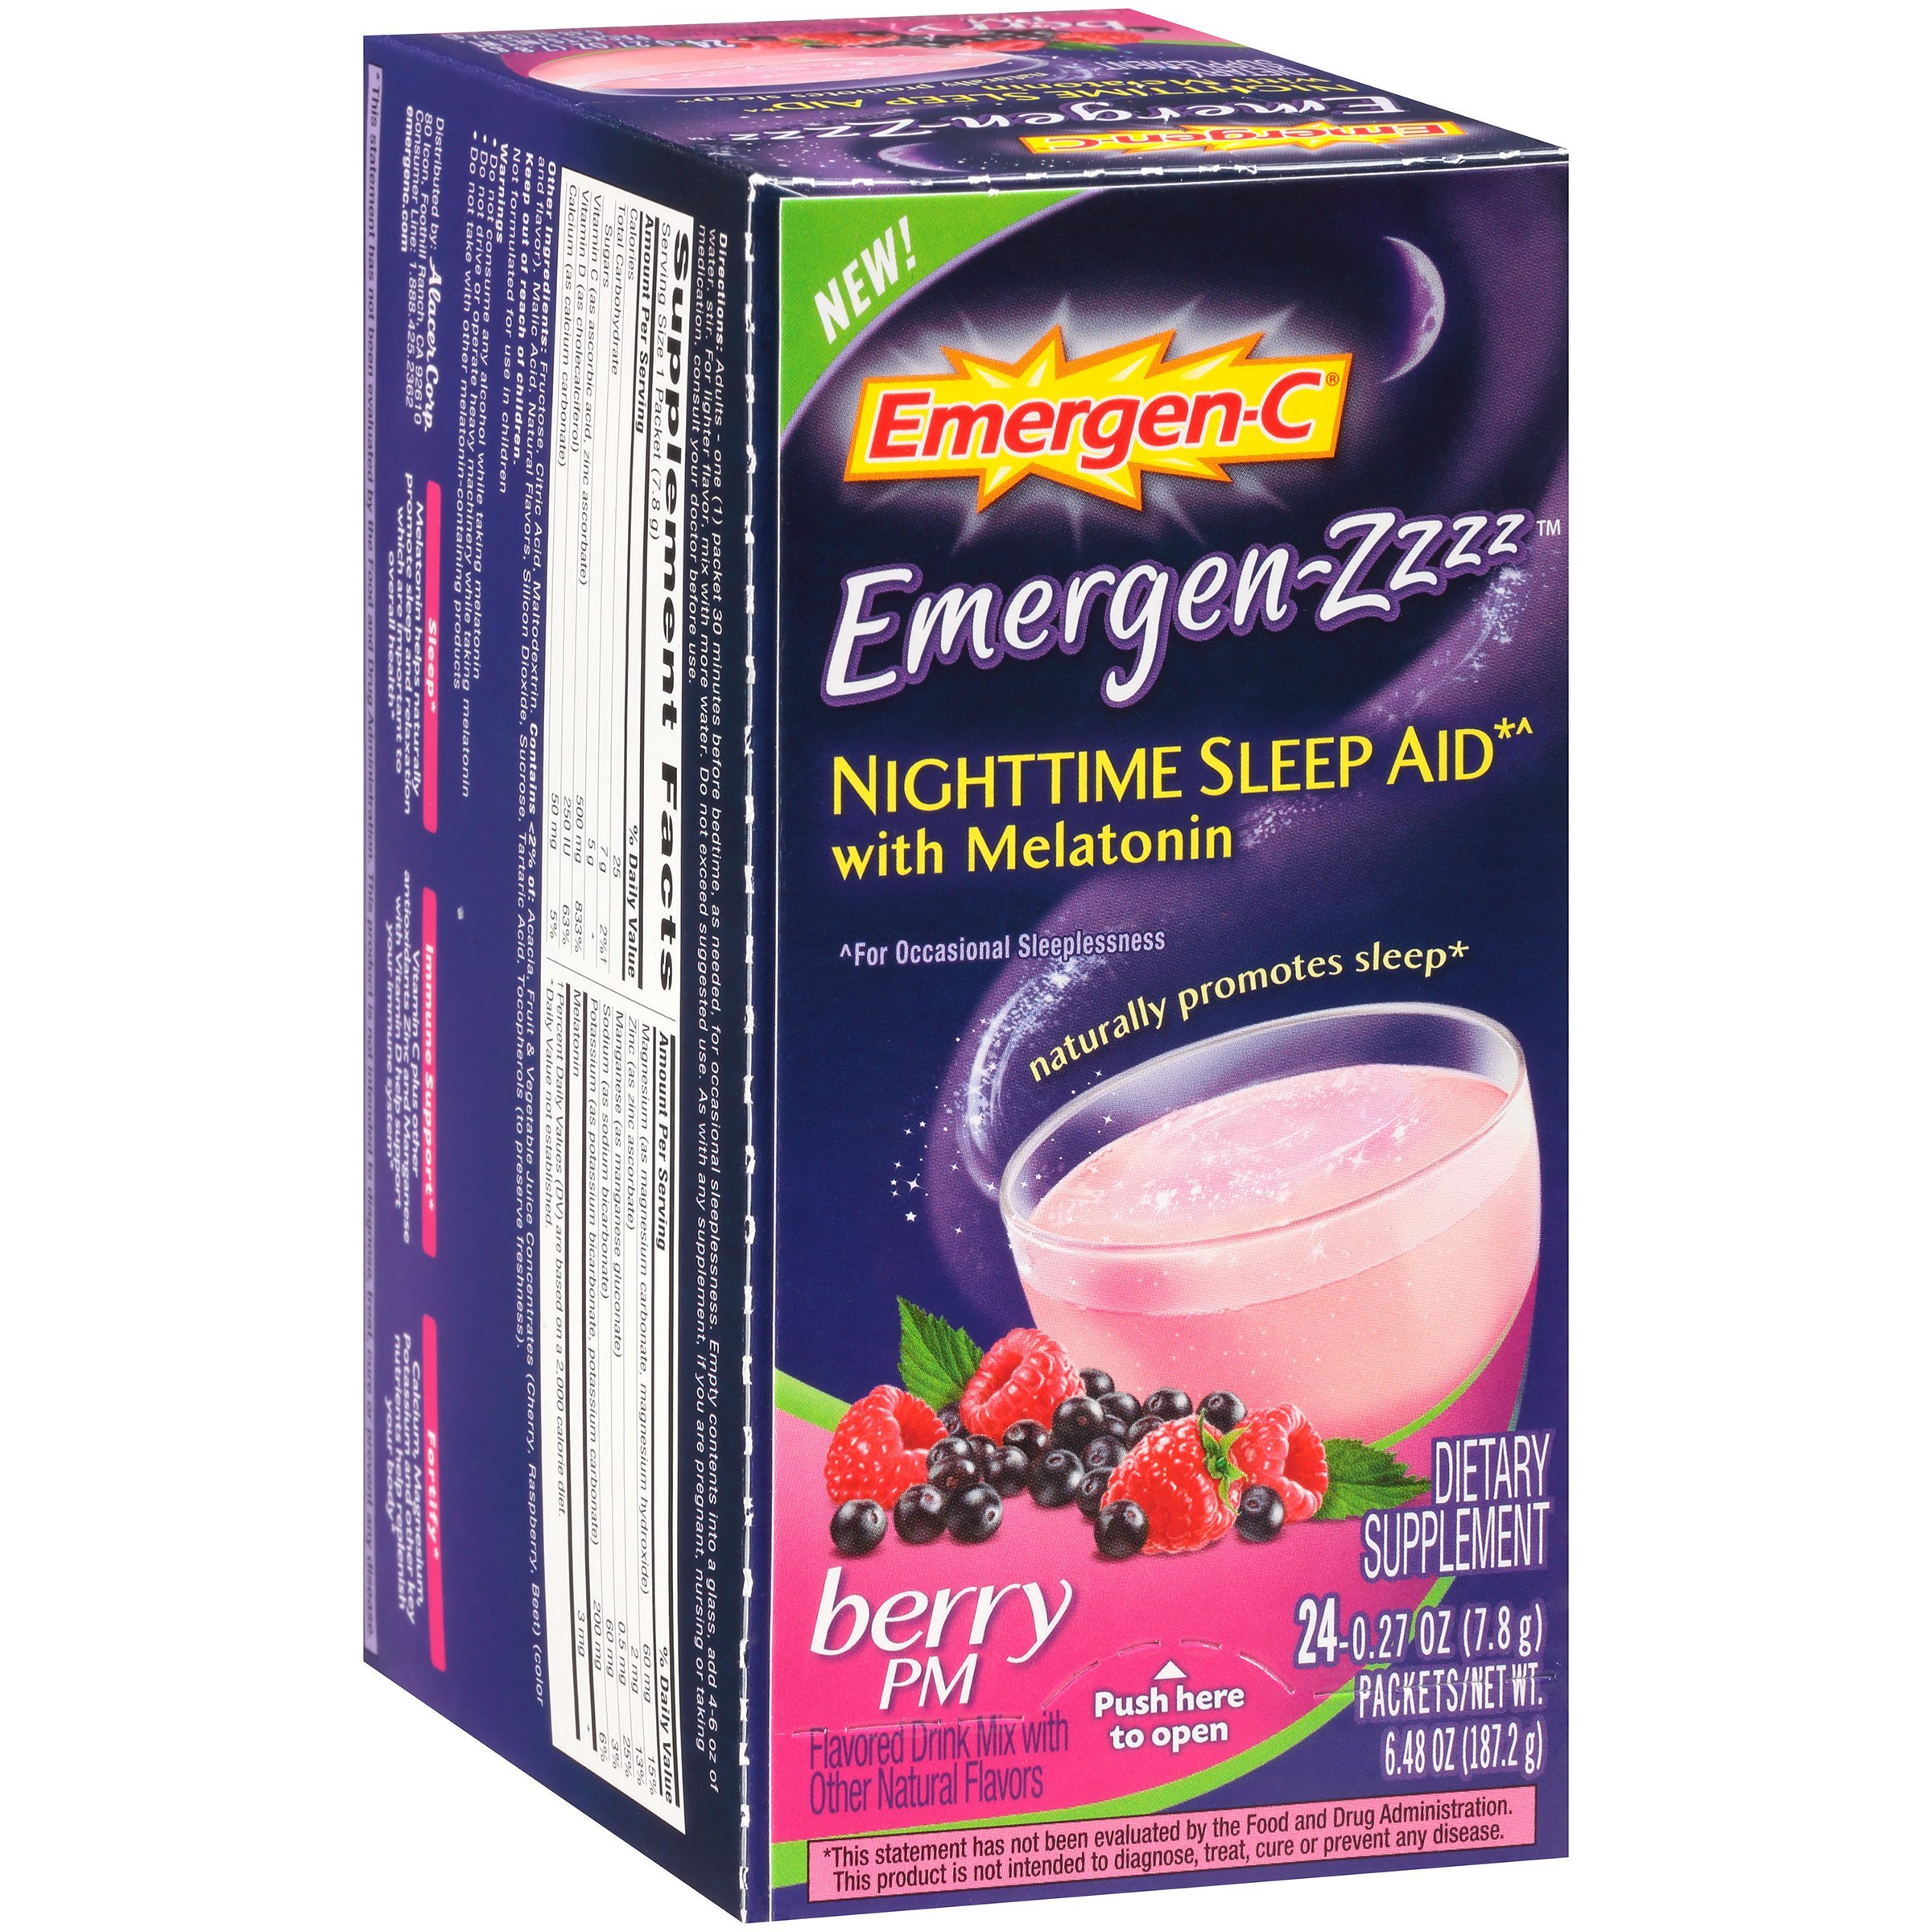 Emergen-Zzzz Nighttime Sleep Aid with Melatonin PM (Berry Flavor, 24-Count 0.27 oz. Packets, Pack of 12)